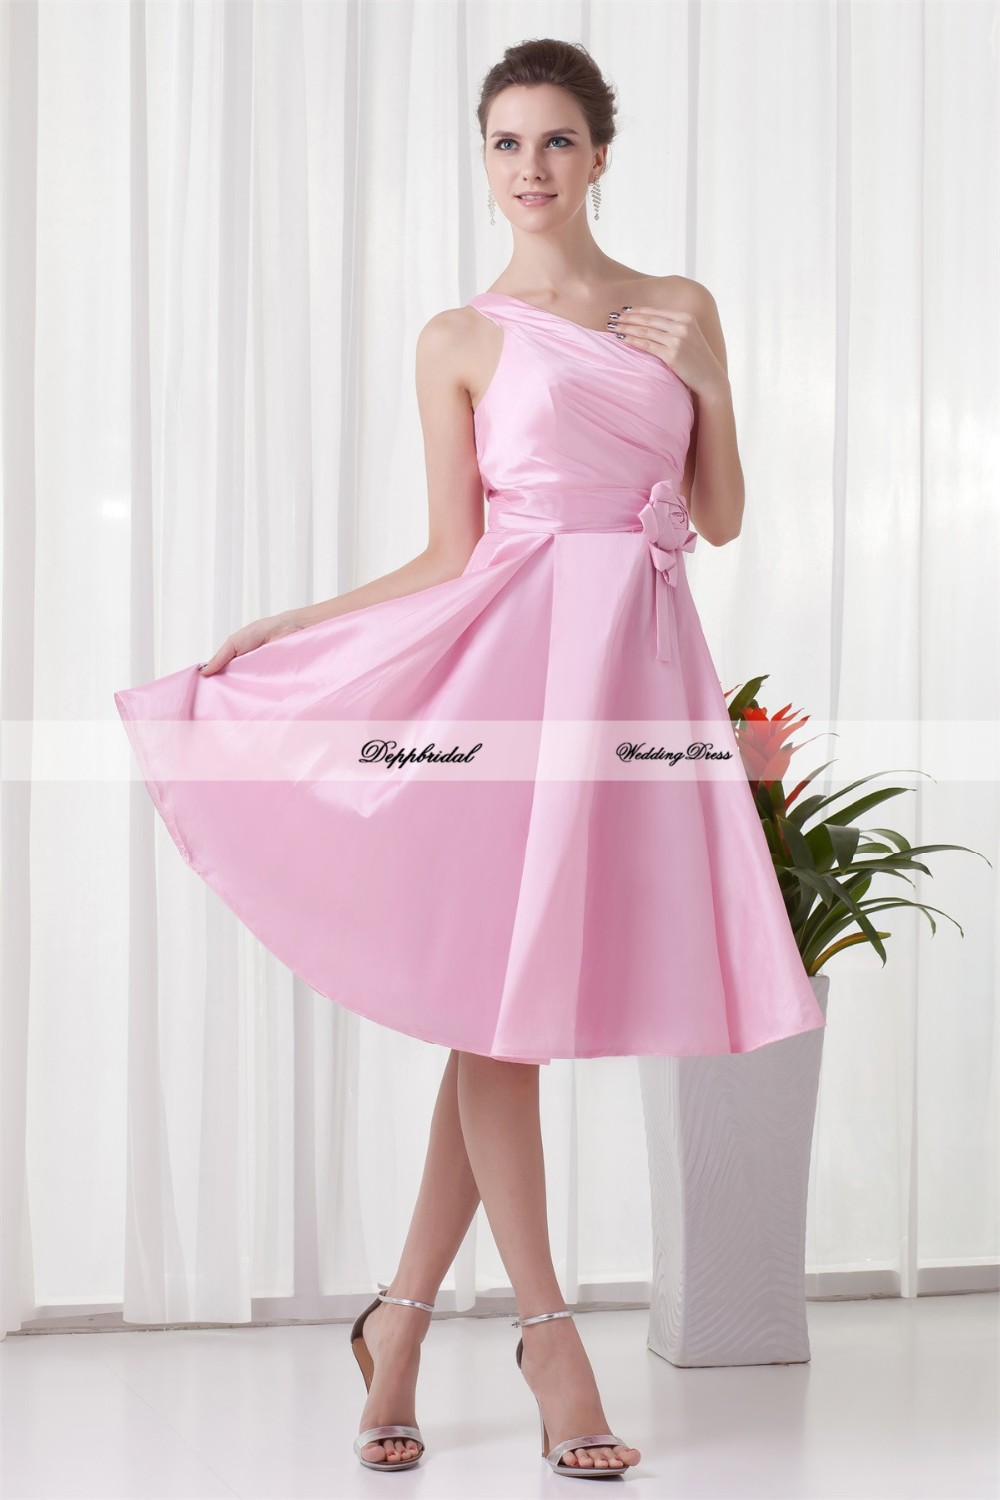 Handmade-Flower-s-A-Line-Tea-Length-One-Shoulder-Bridesmaid-Dresses-22708-80840